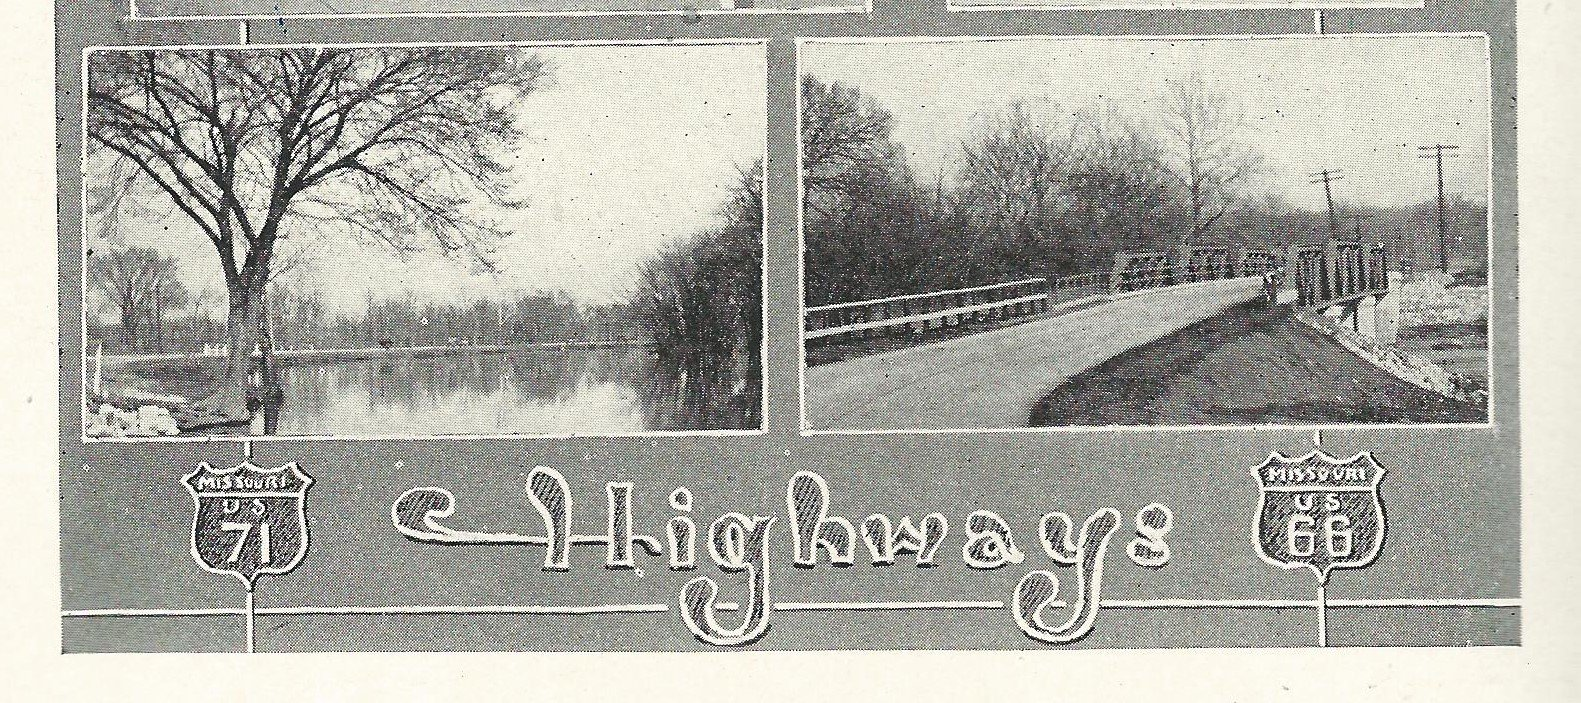 1927 Carthaginian yearbook image showing Spring River and US 66 route through what is now Kellogg Lake Park.